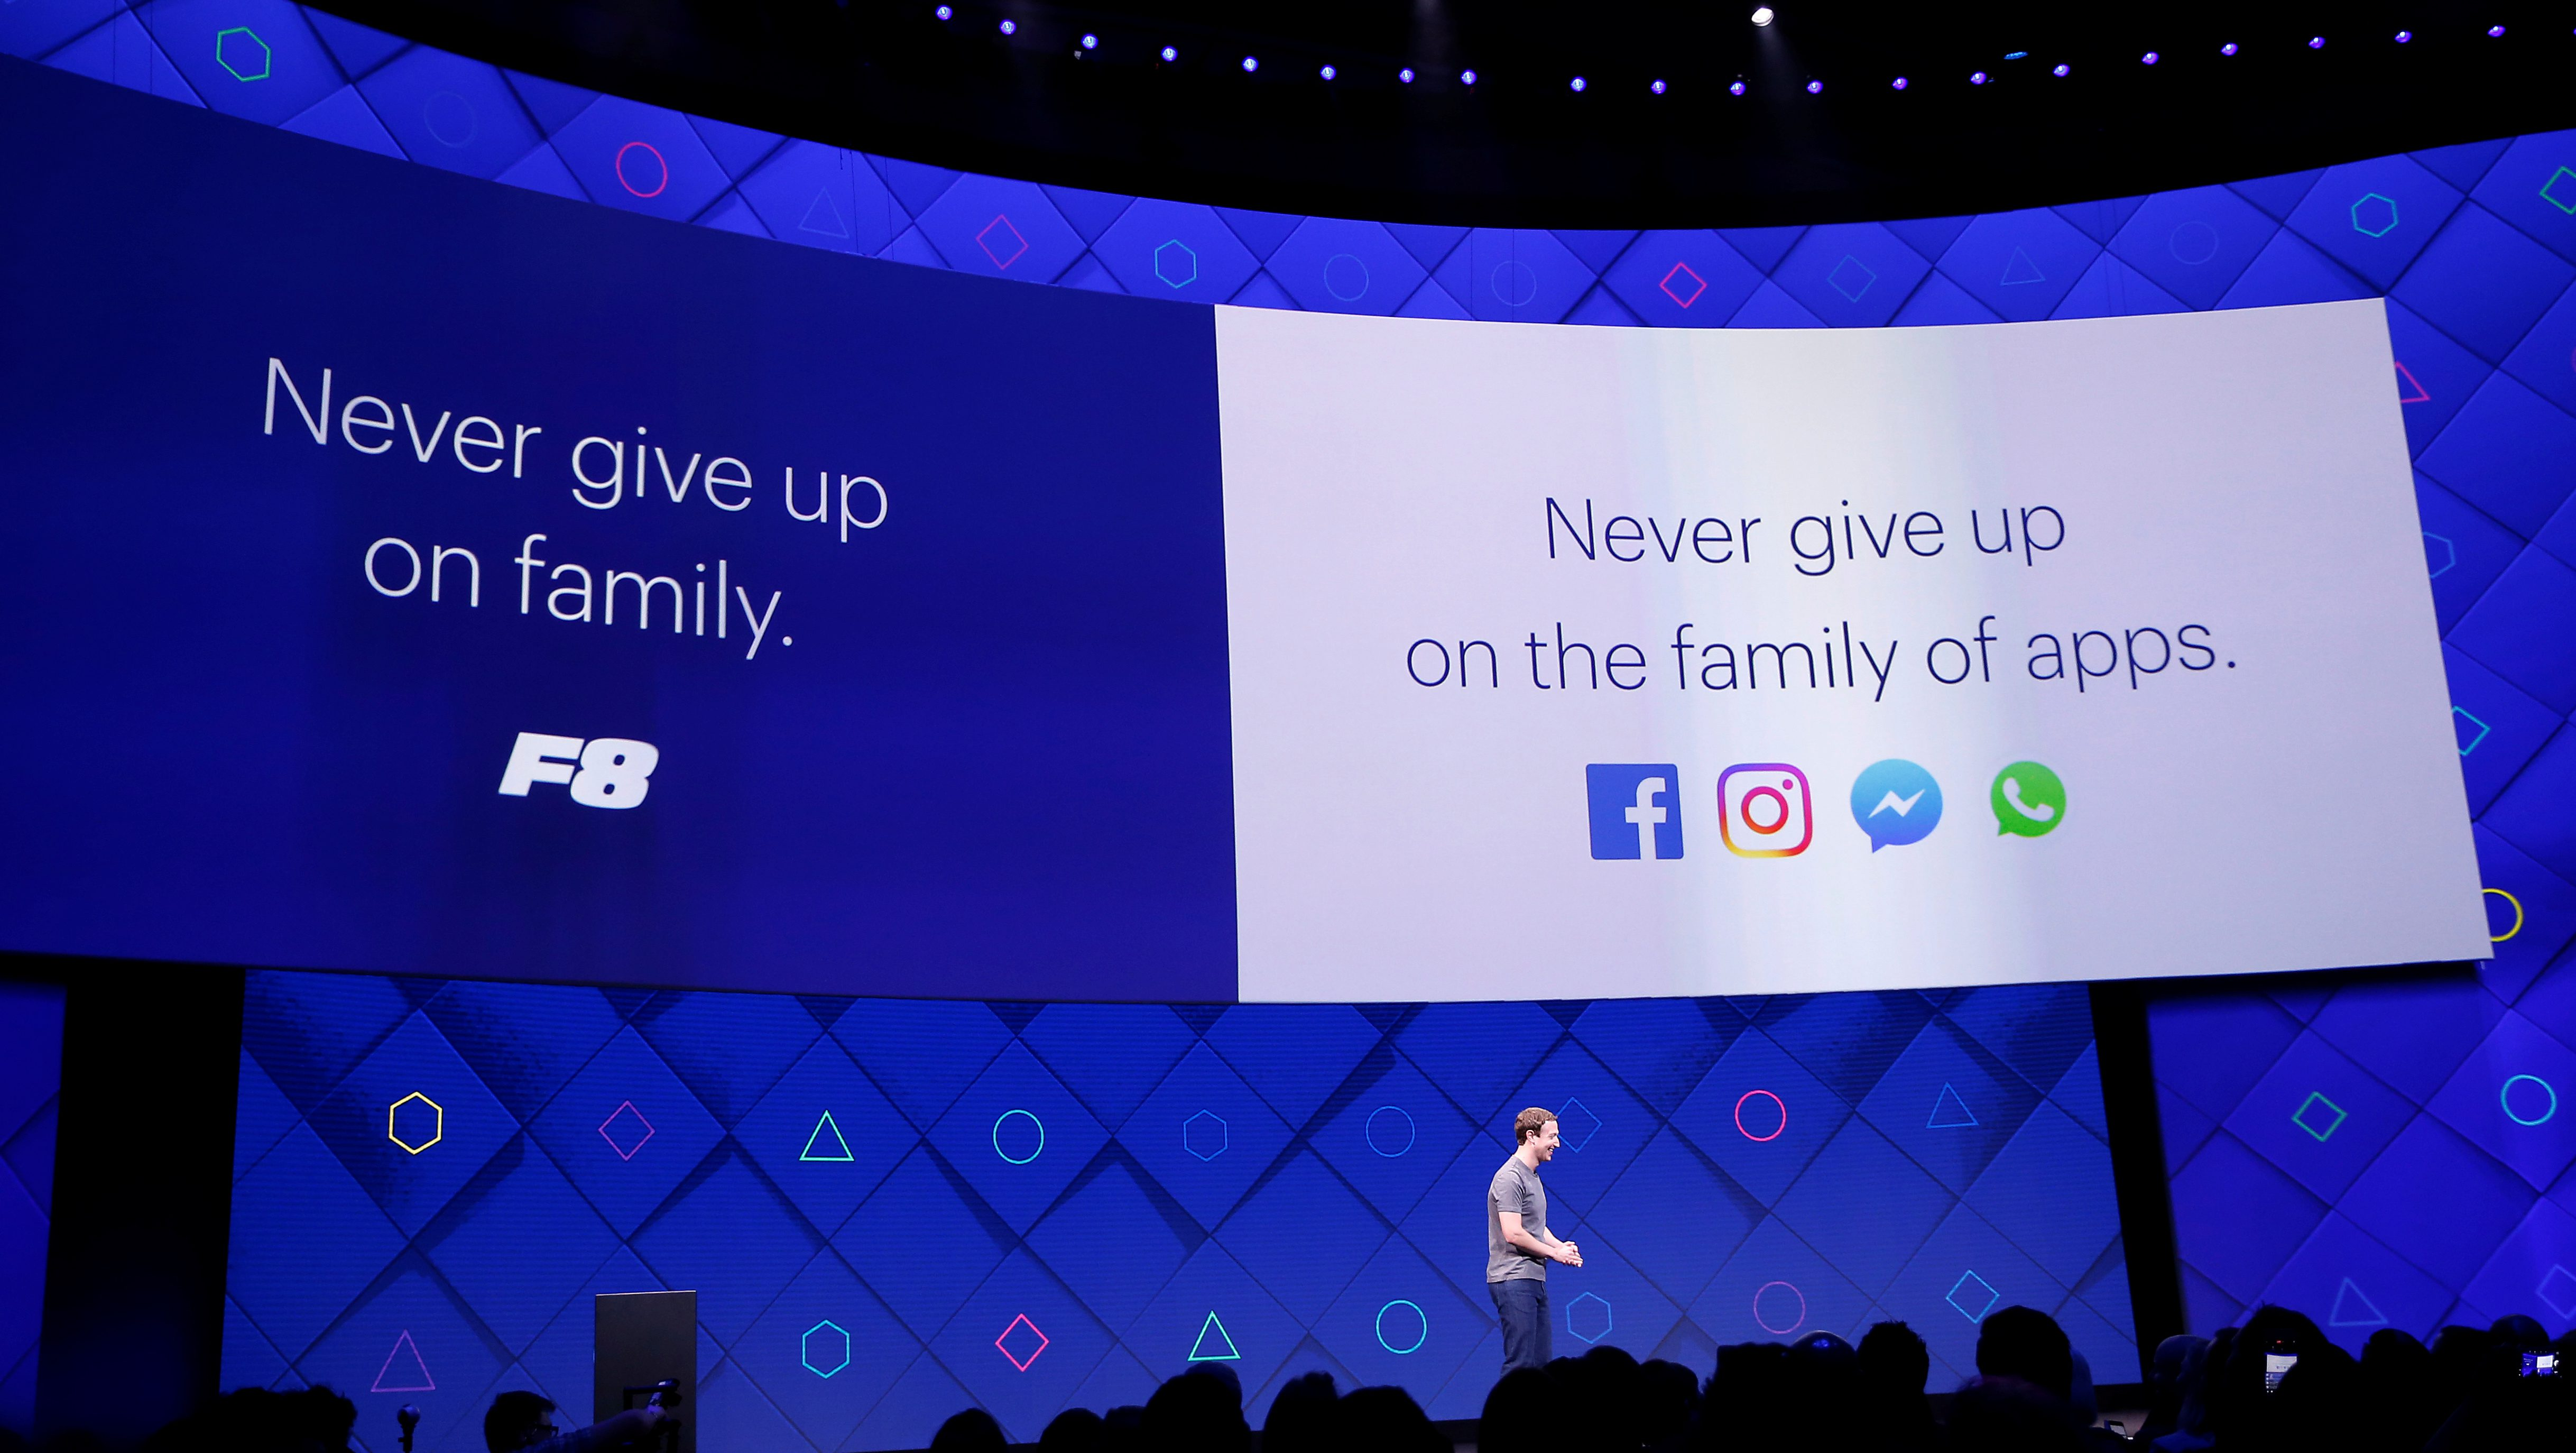 Facebook Founder and CEO Mark Zuckerberg speaks on stage during the annual Facebook F8 developers conference.